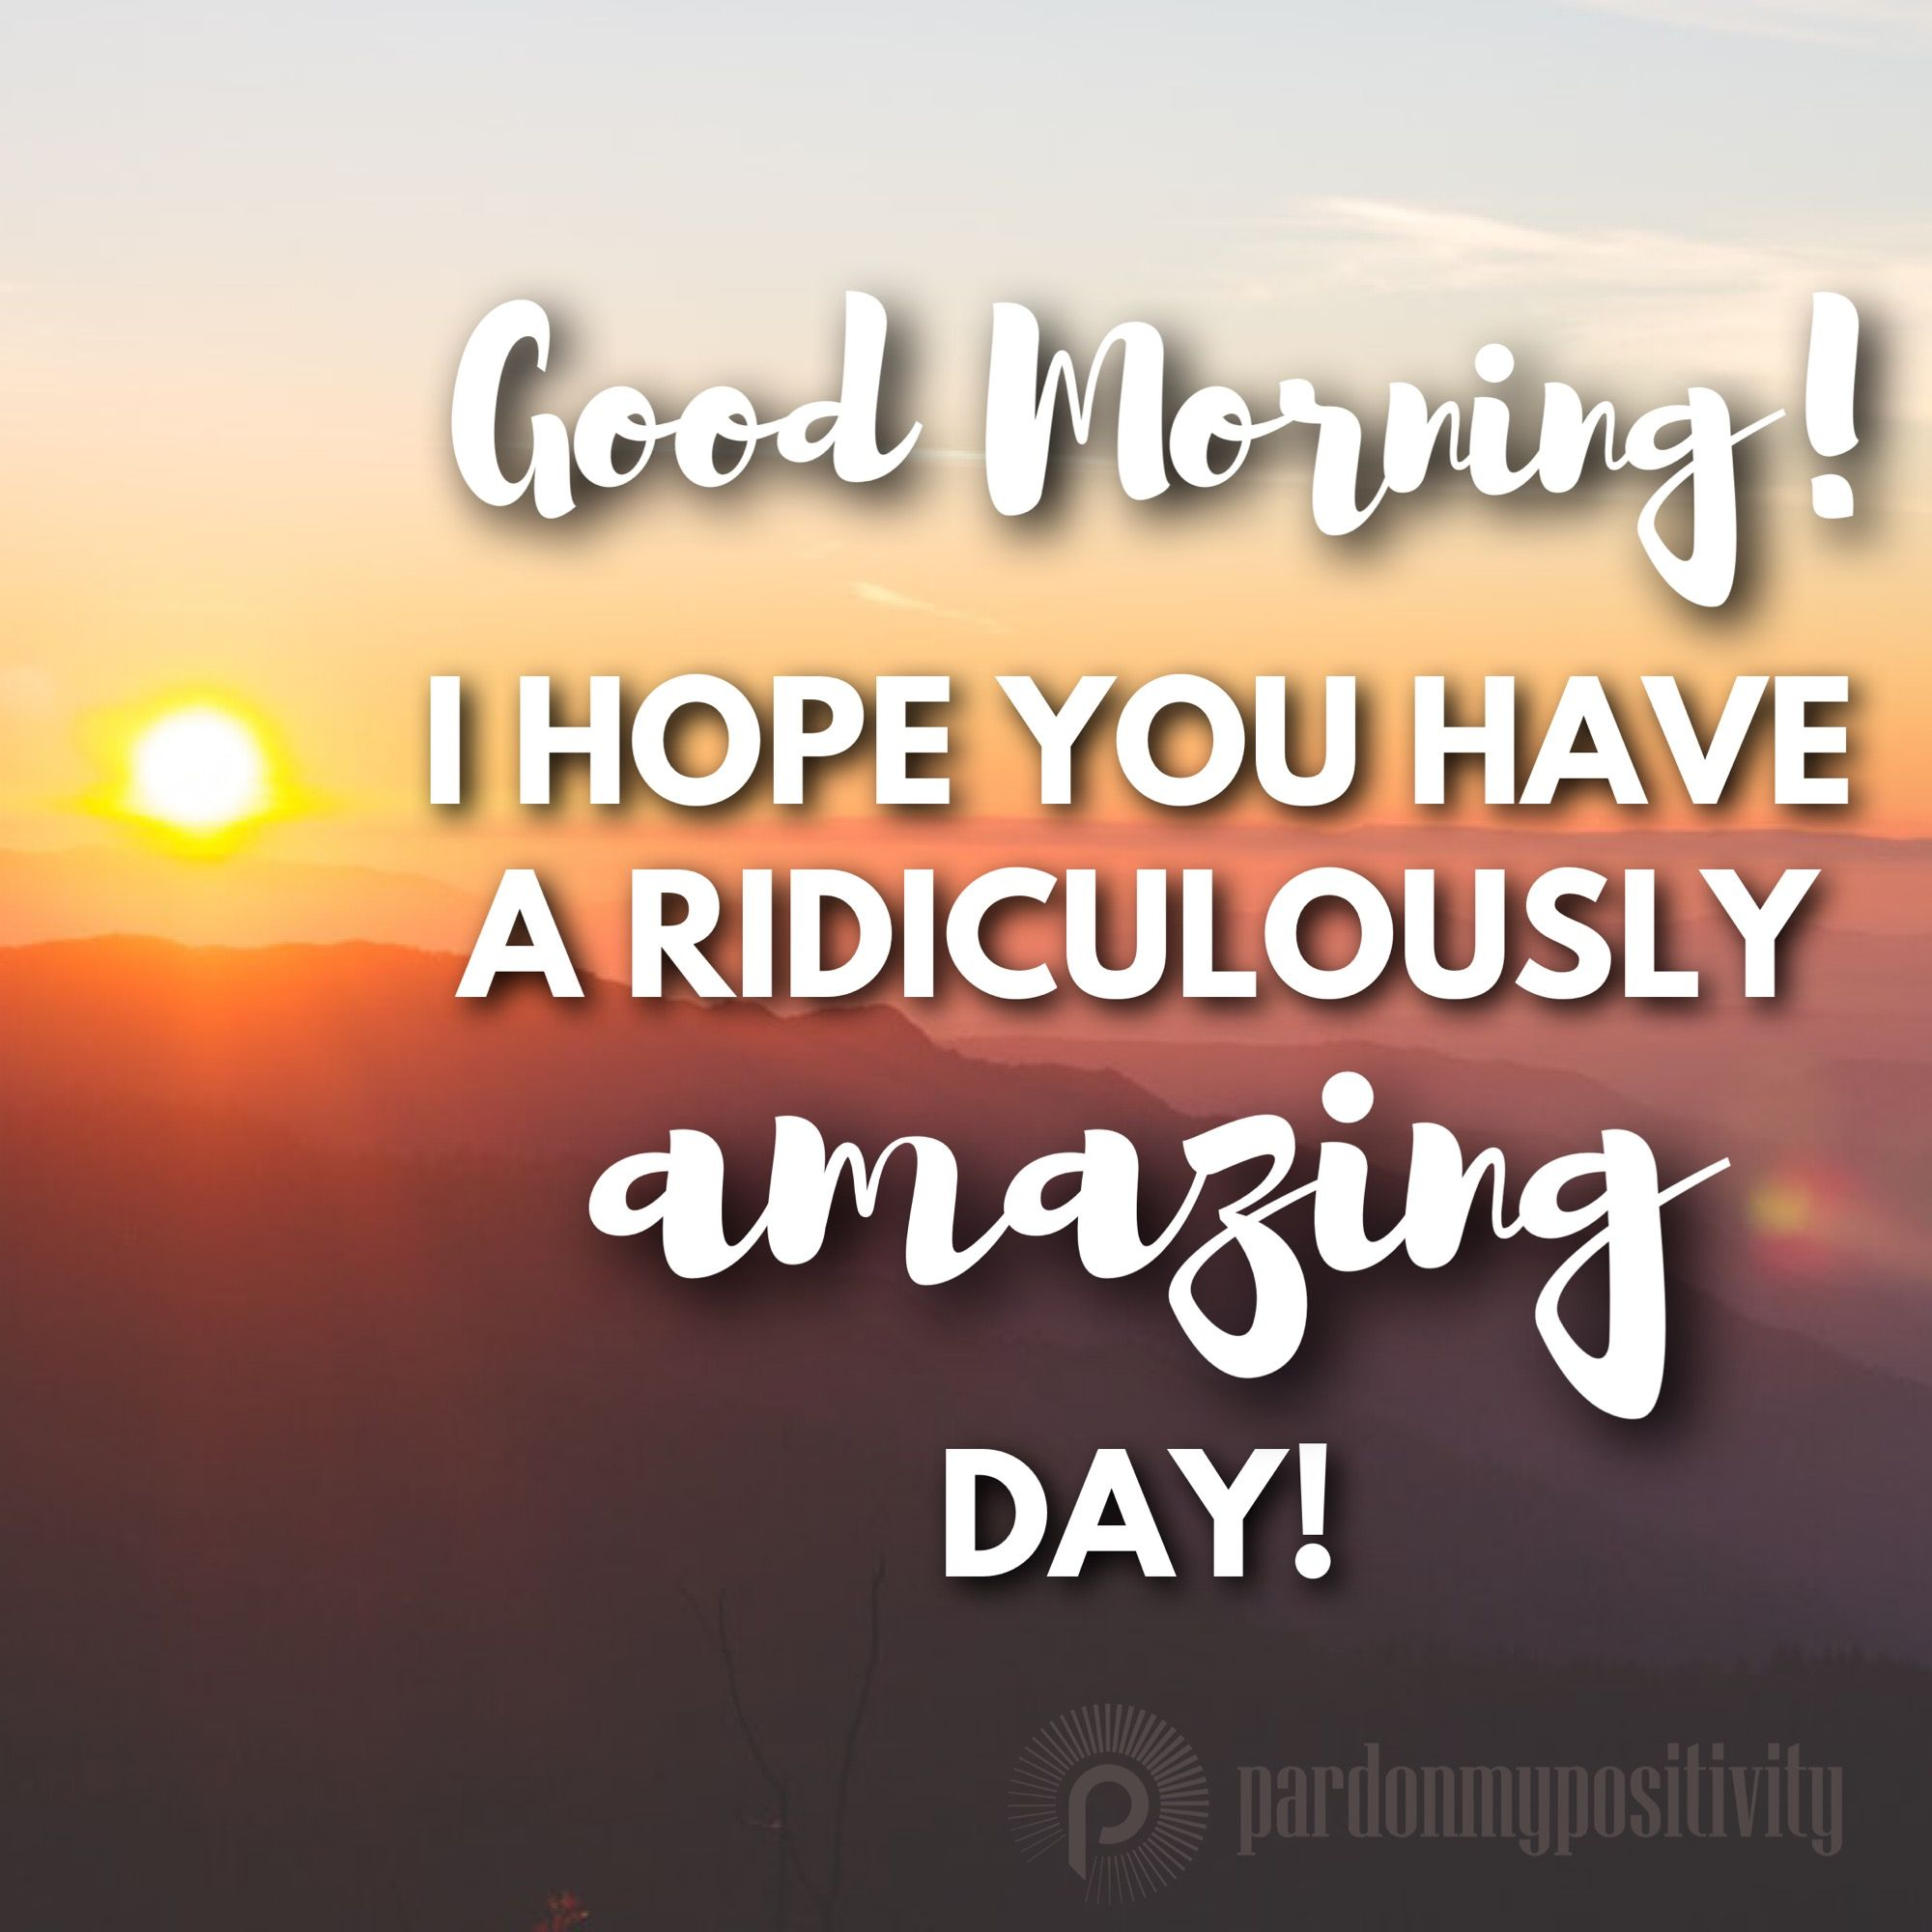 Good Morning! I hope you have a ridiculously amazing day